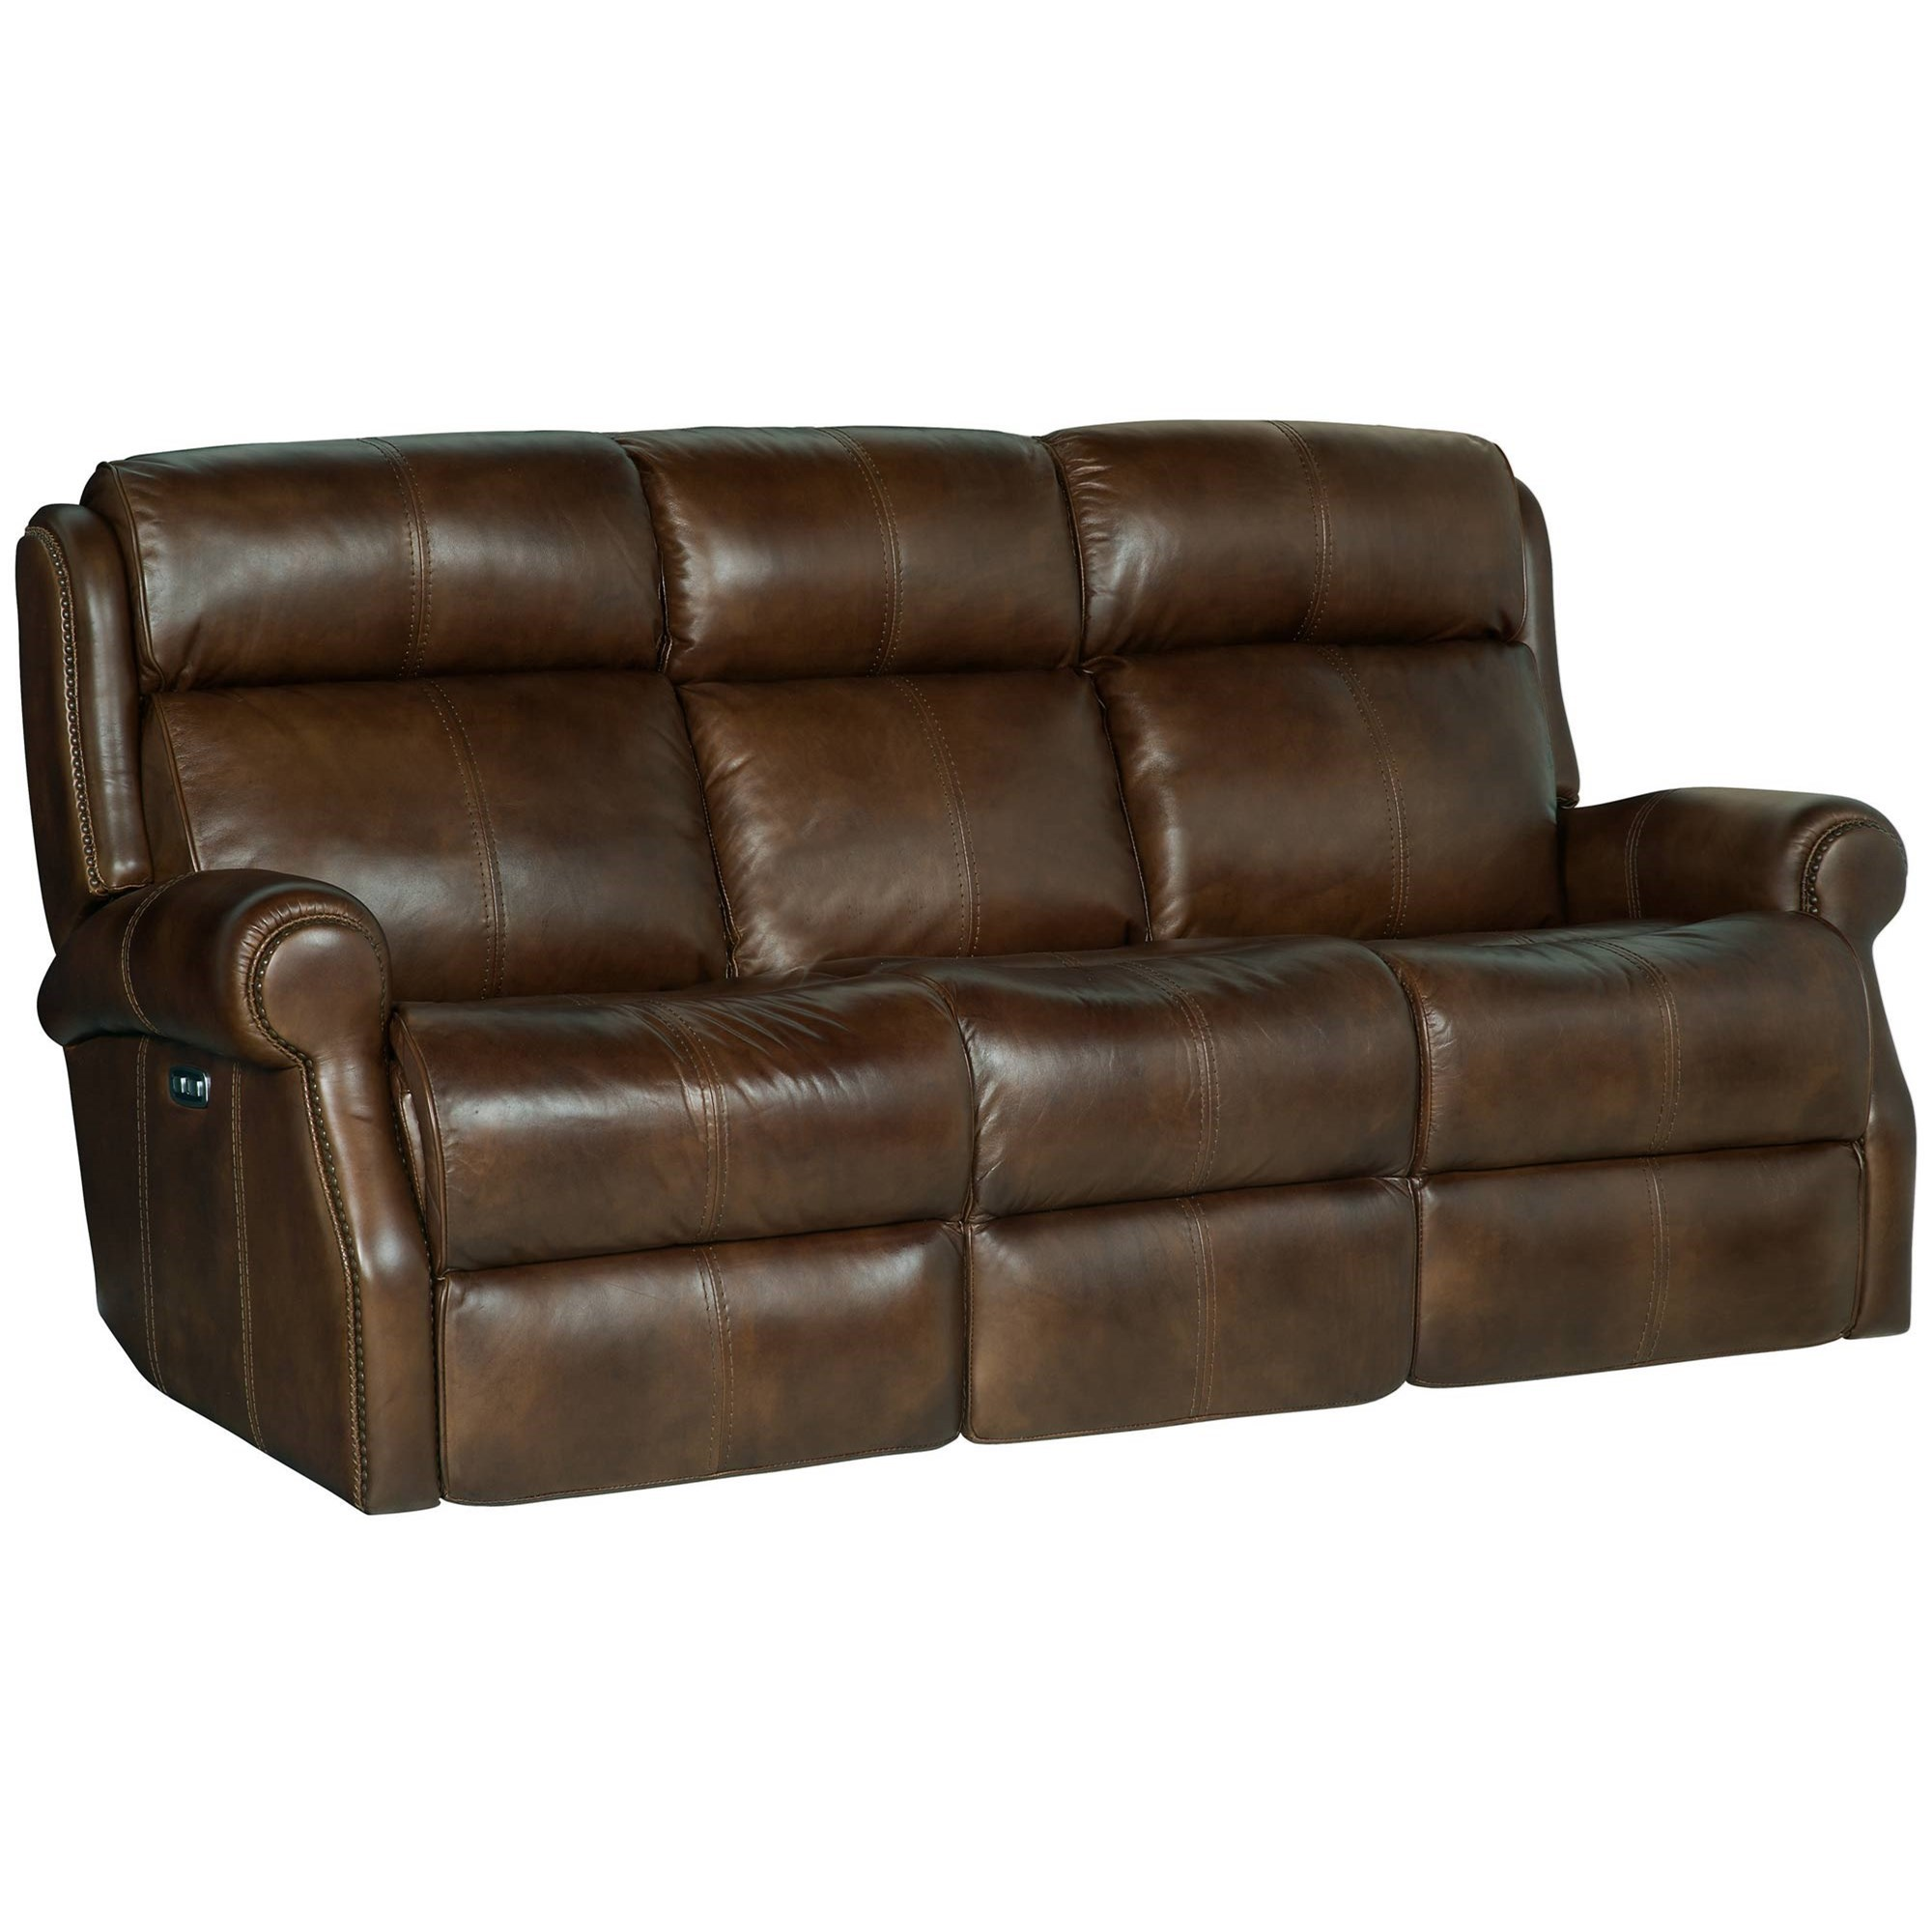 Bernhardt Mcgwire Leather Power Reclining Sofa With Power